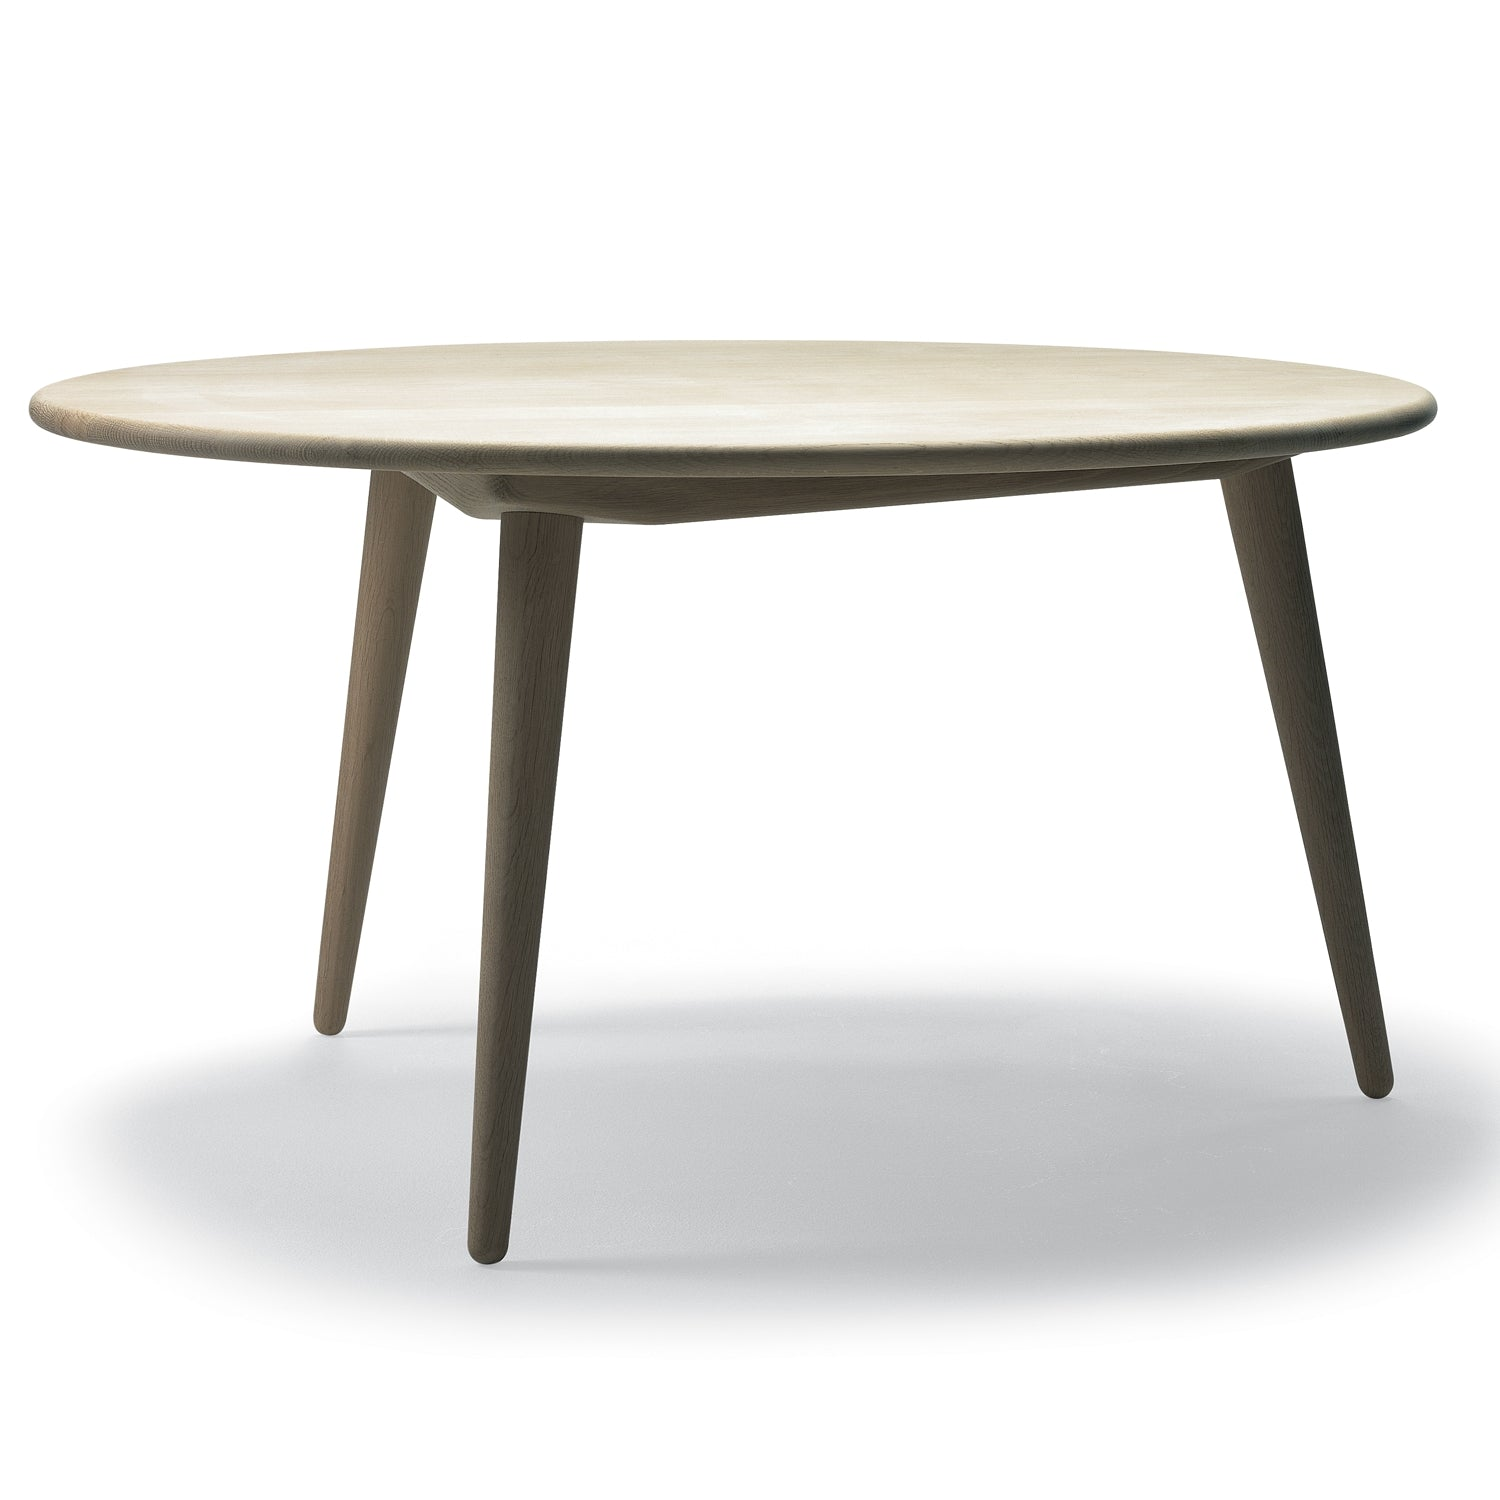 CARL HANSEN & SØN | CH008 Coffee Table | Hans J. Wegner | Available in 3 weeks*